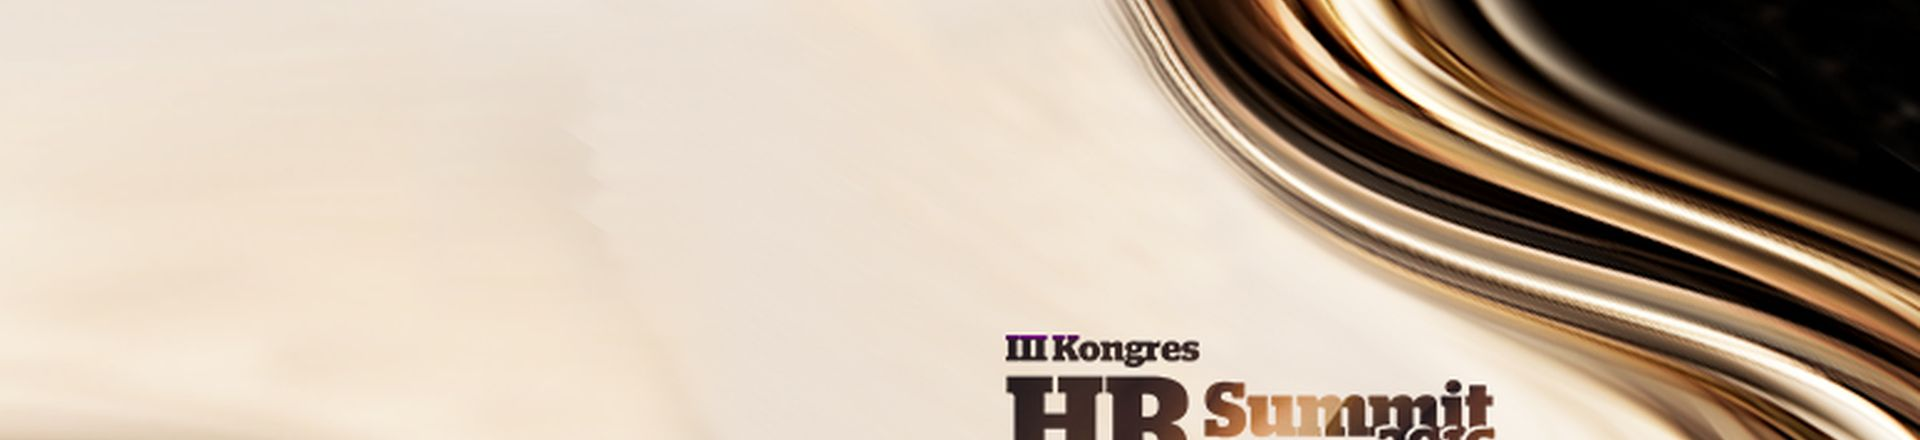 III Kongres HR Summit 2016